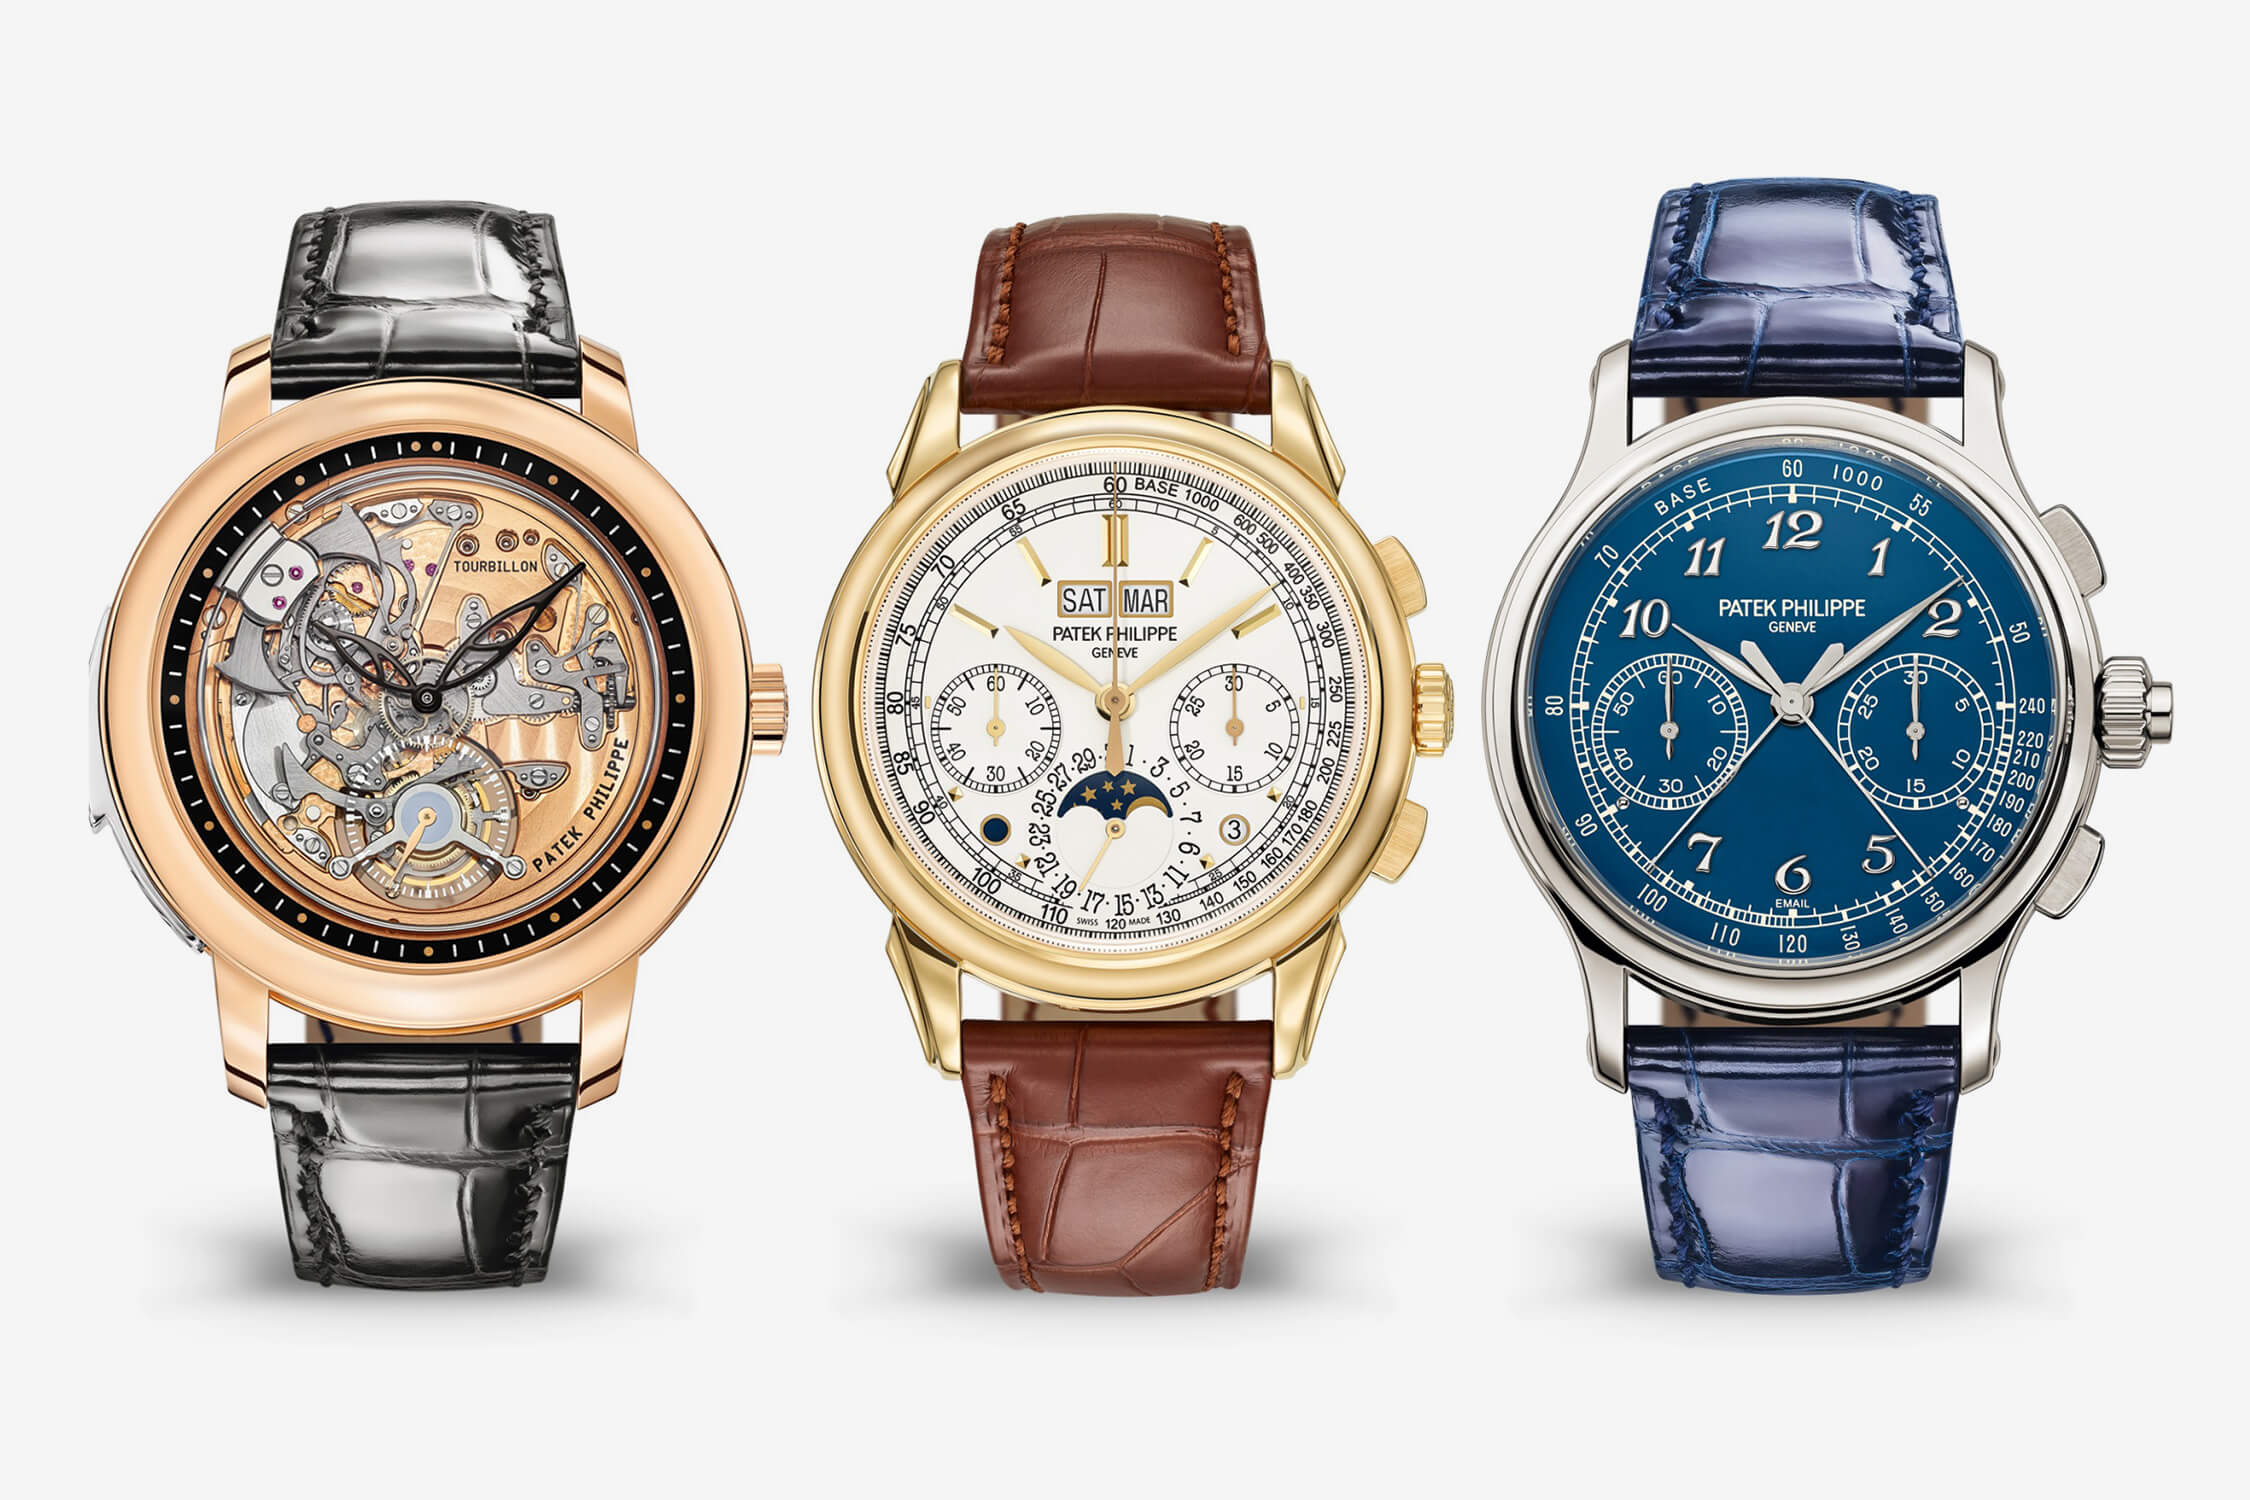 Patek Philippe's New 2020 Grand Complication Models